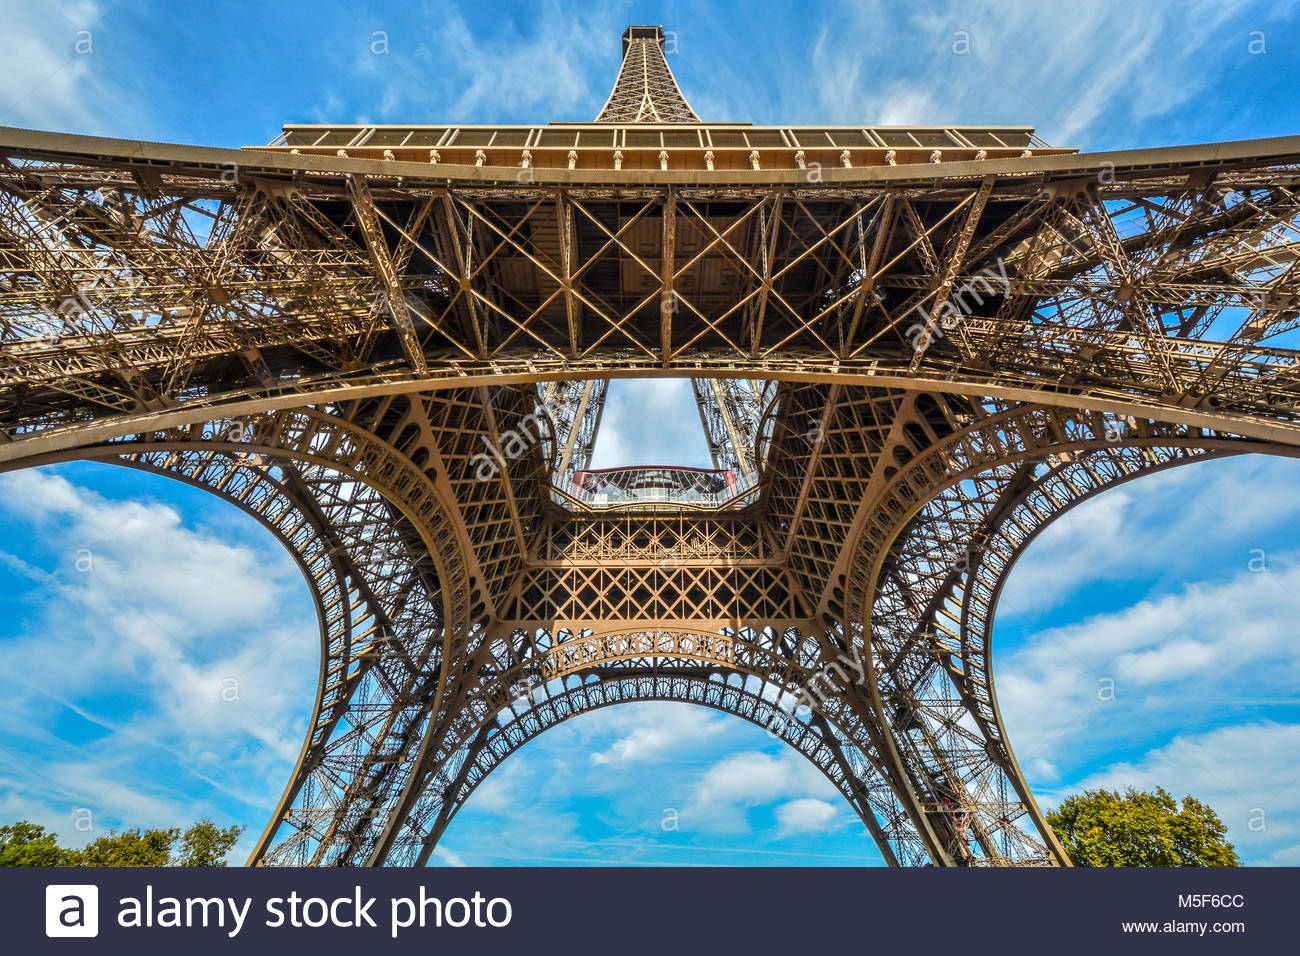 View looking up from underneath the Eiffel Tower on a sunny day with powder blue skies in Paris France - Stock Image